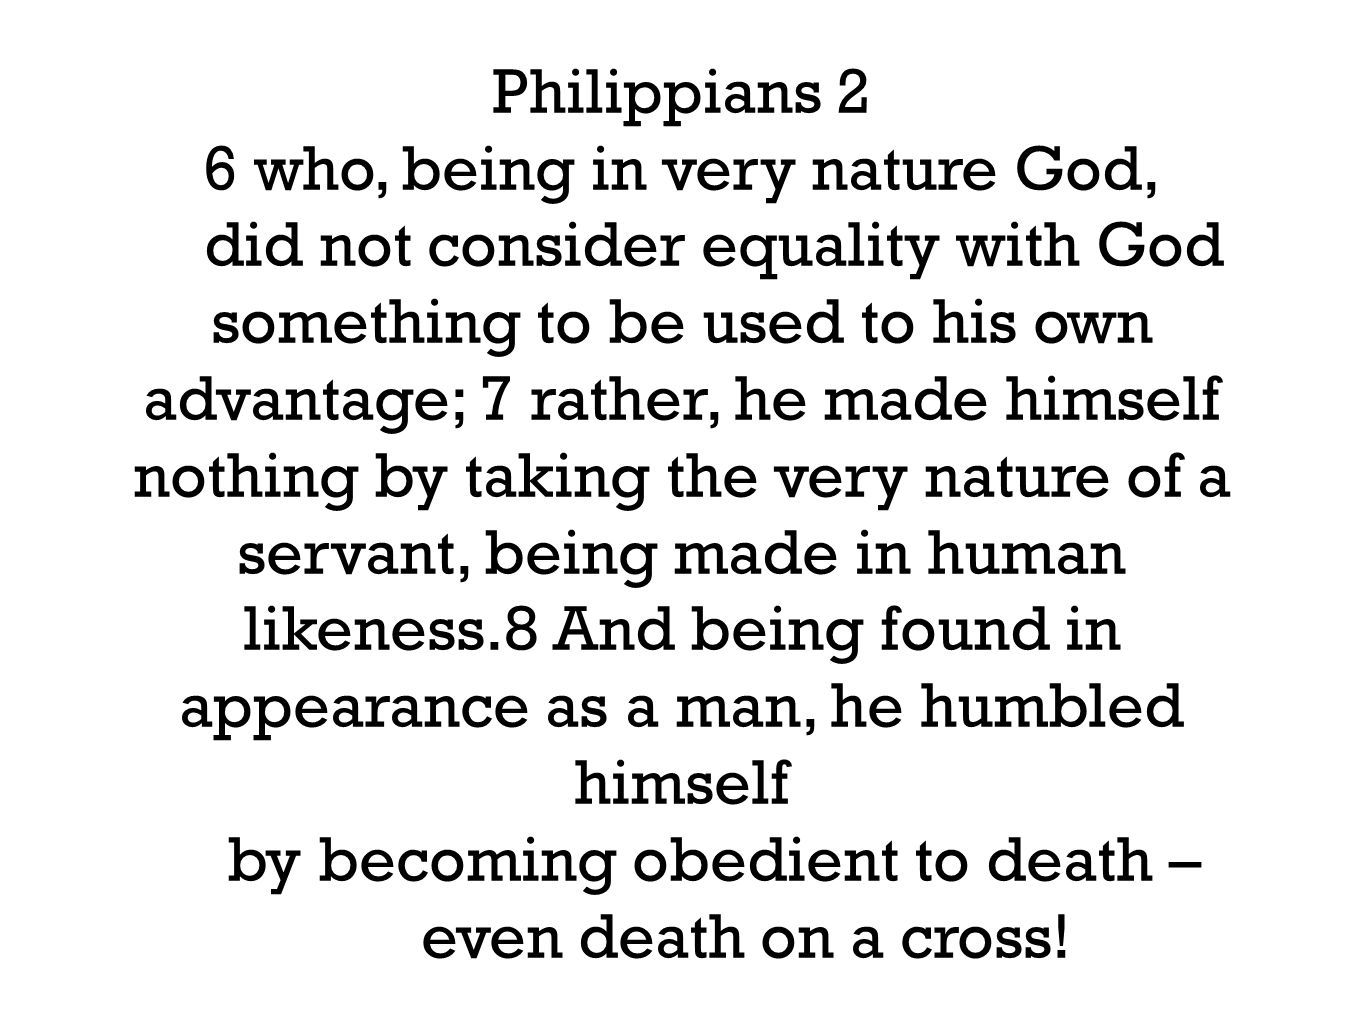 Philippians 2 6 who, being in very nature God, did not consider equality with God something to be used to his own advantage; 7 rather, he made himself nothing by taking the very nature of a servant, being made in human likeness.8 And being found in appearance as a man, he humbled himself by becoming obedient to death – even death on a cross!